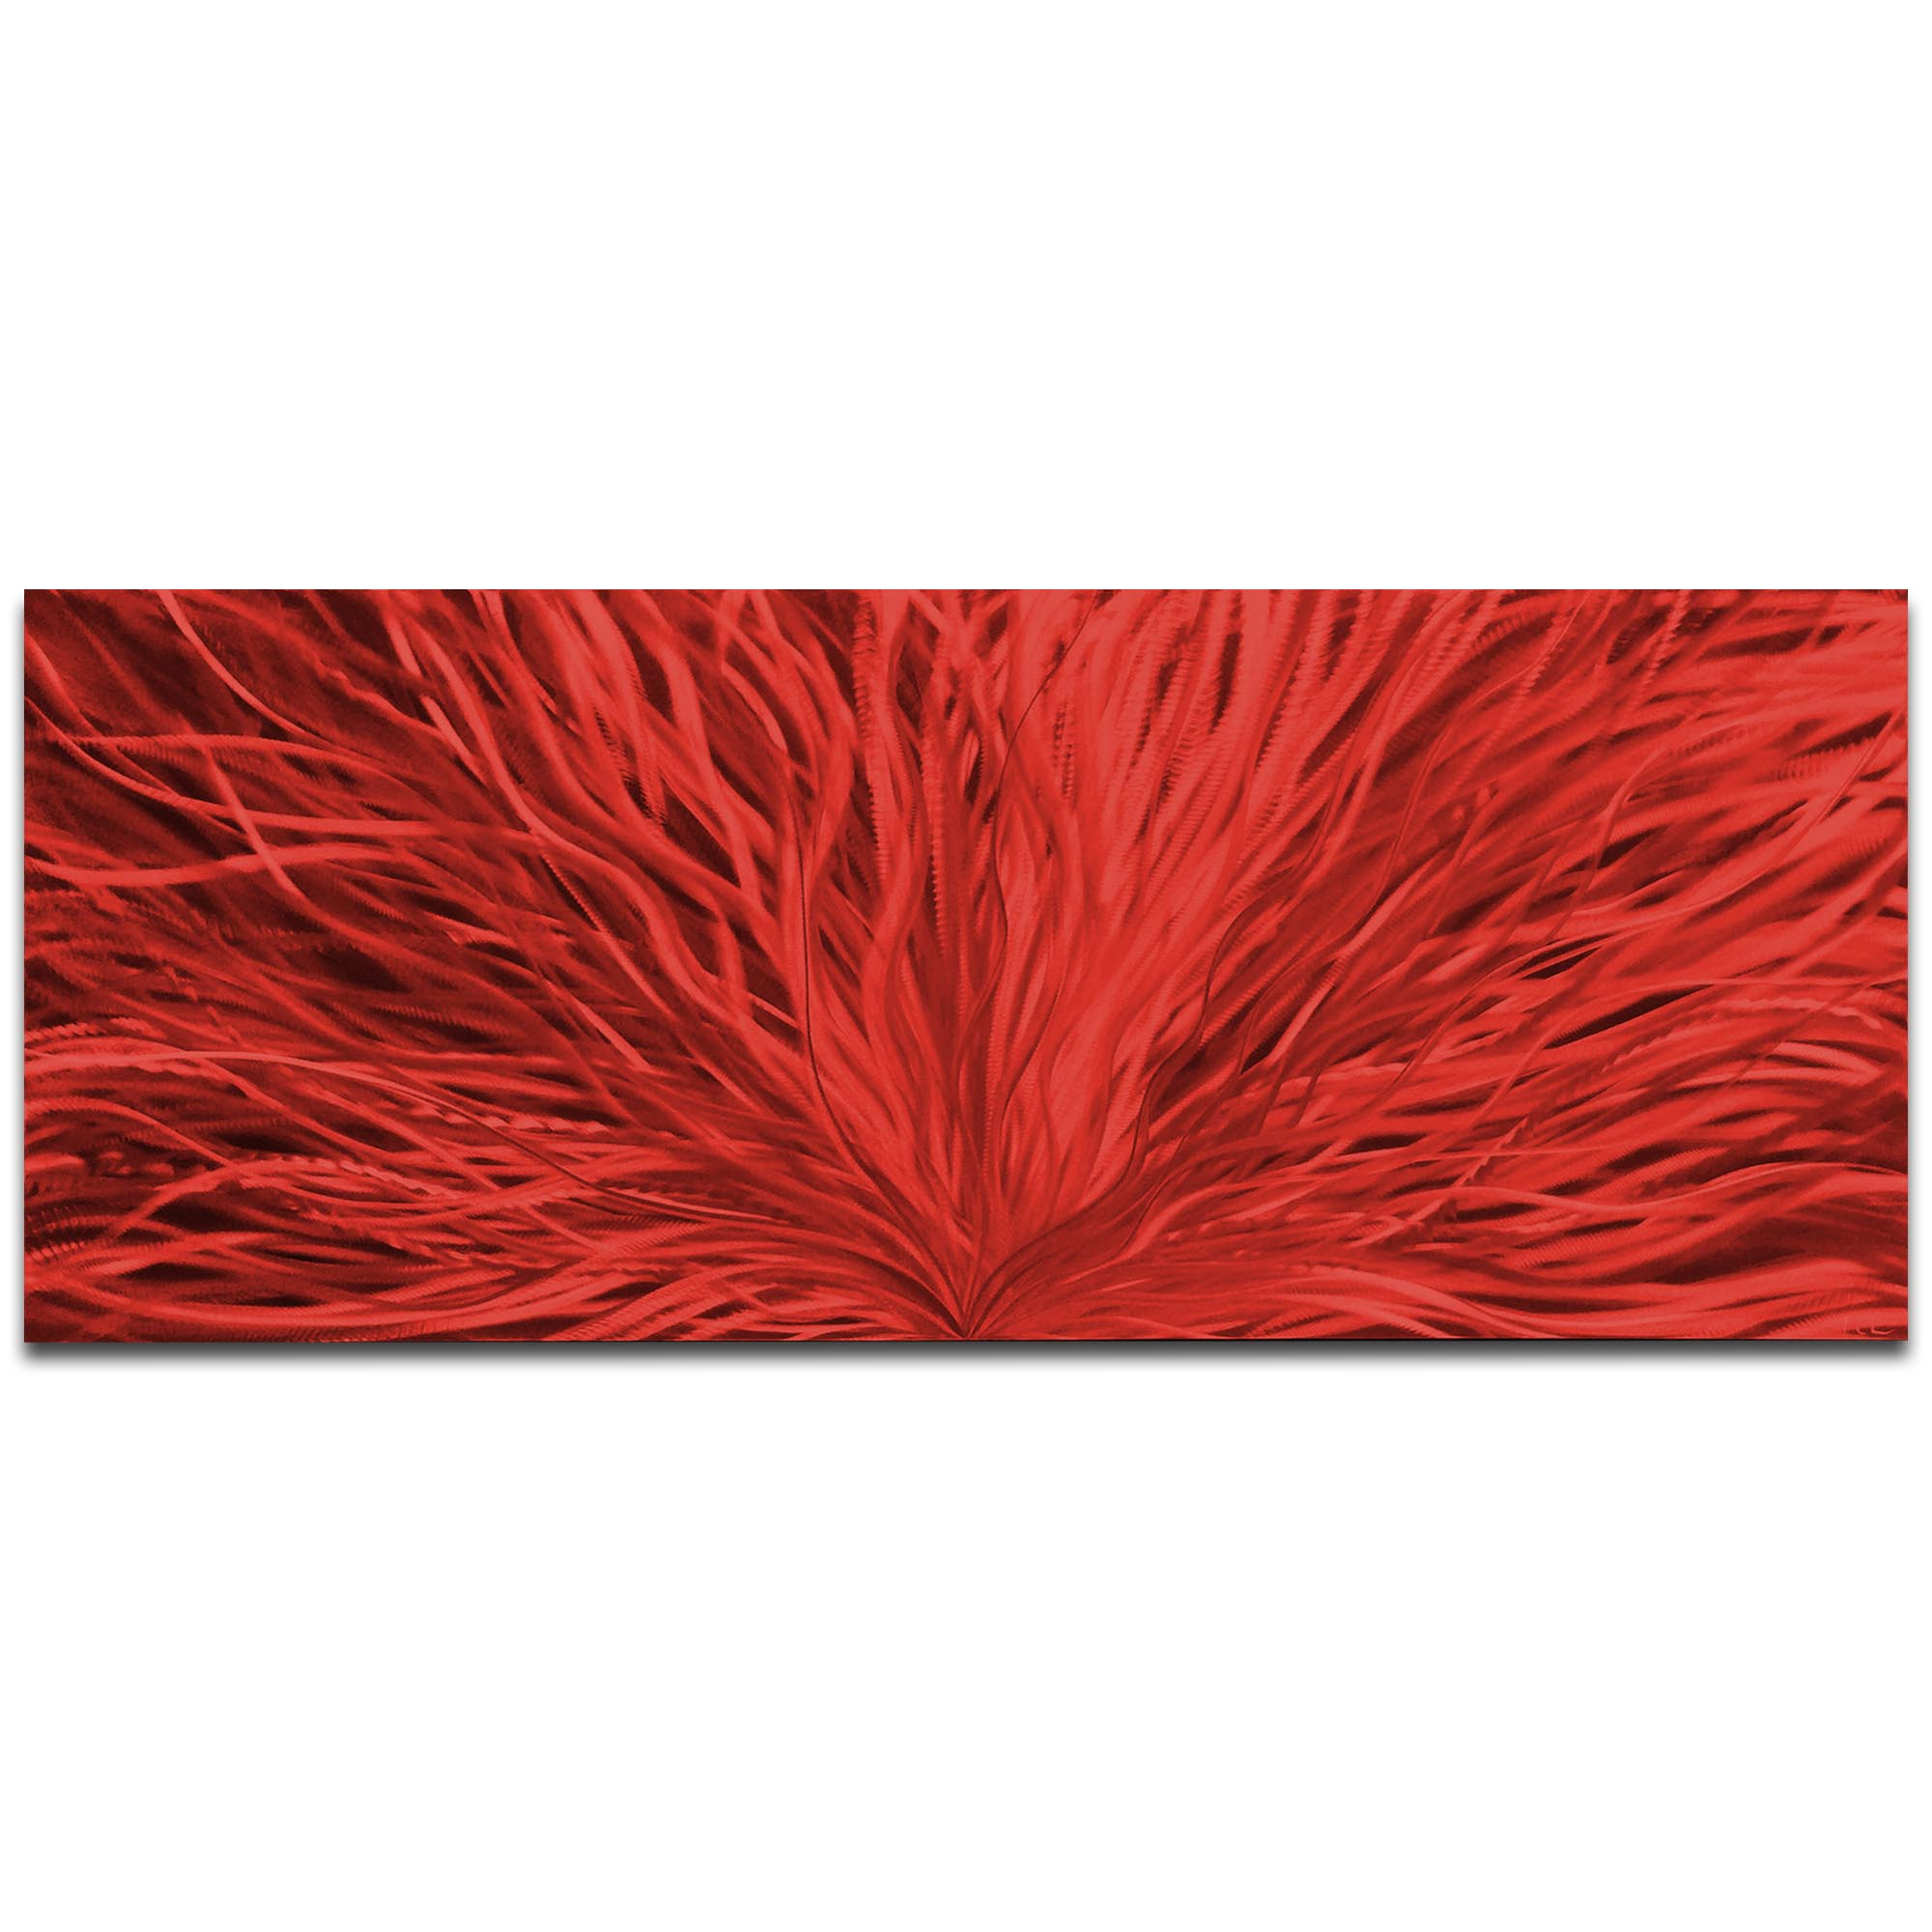 Helena Martin 'Blooming Red' 60in x 24in Original Abstract Art on Ground and Painted Metal